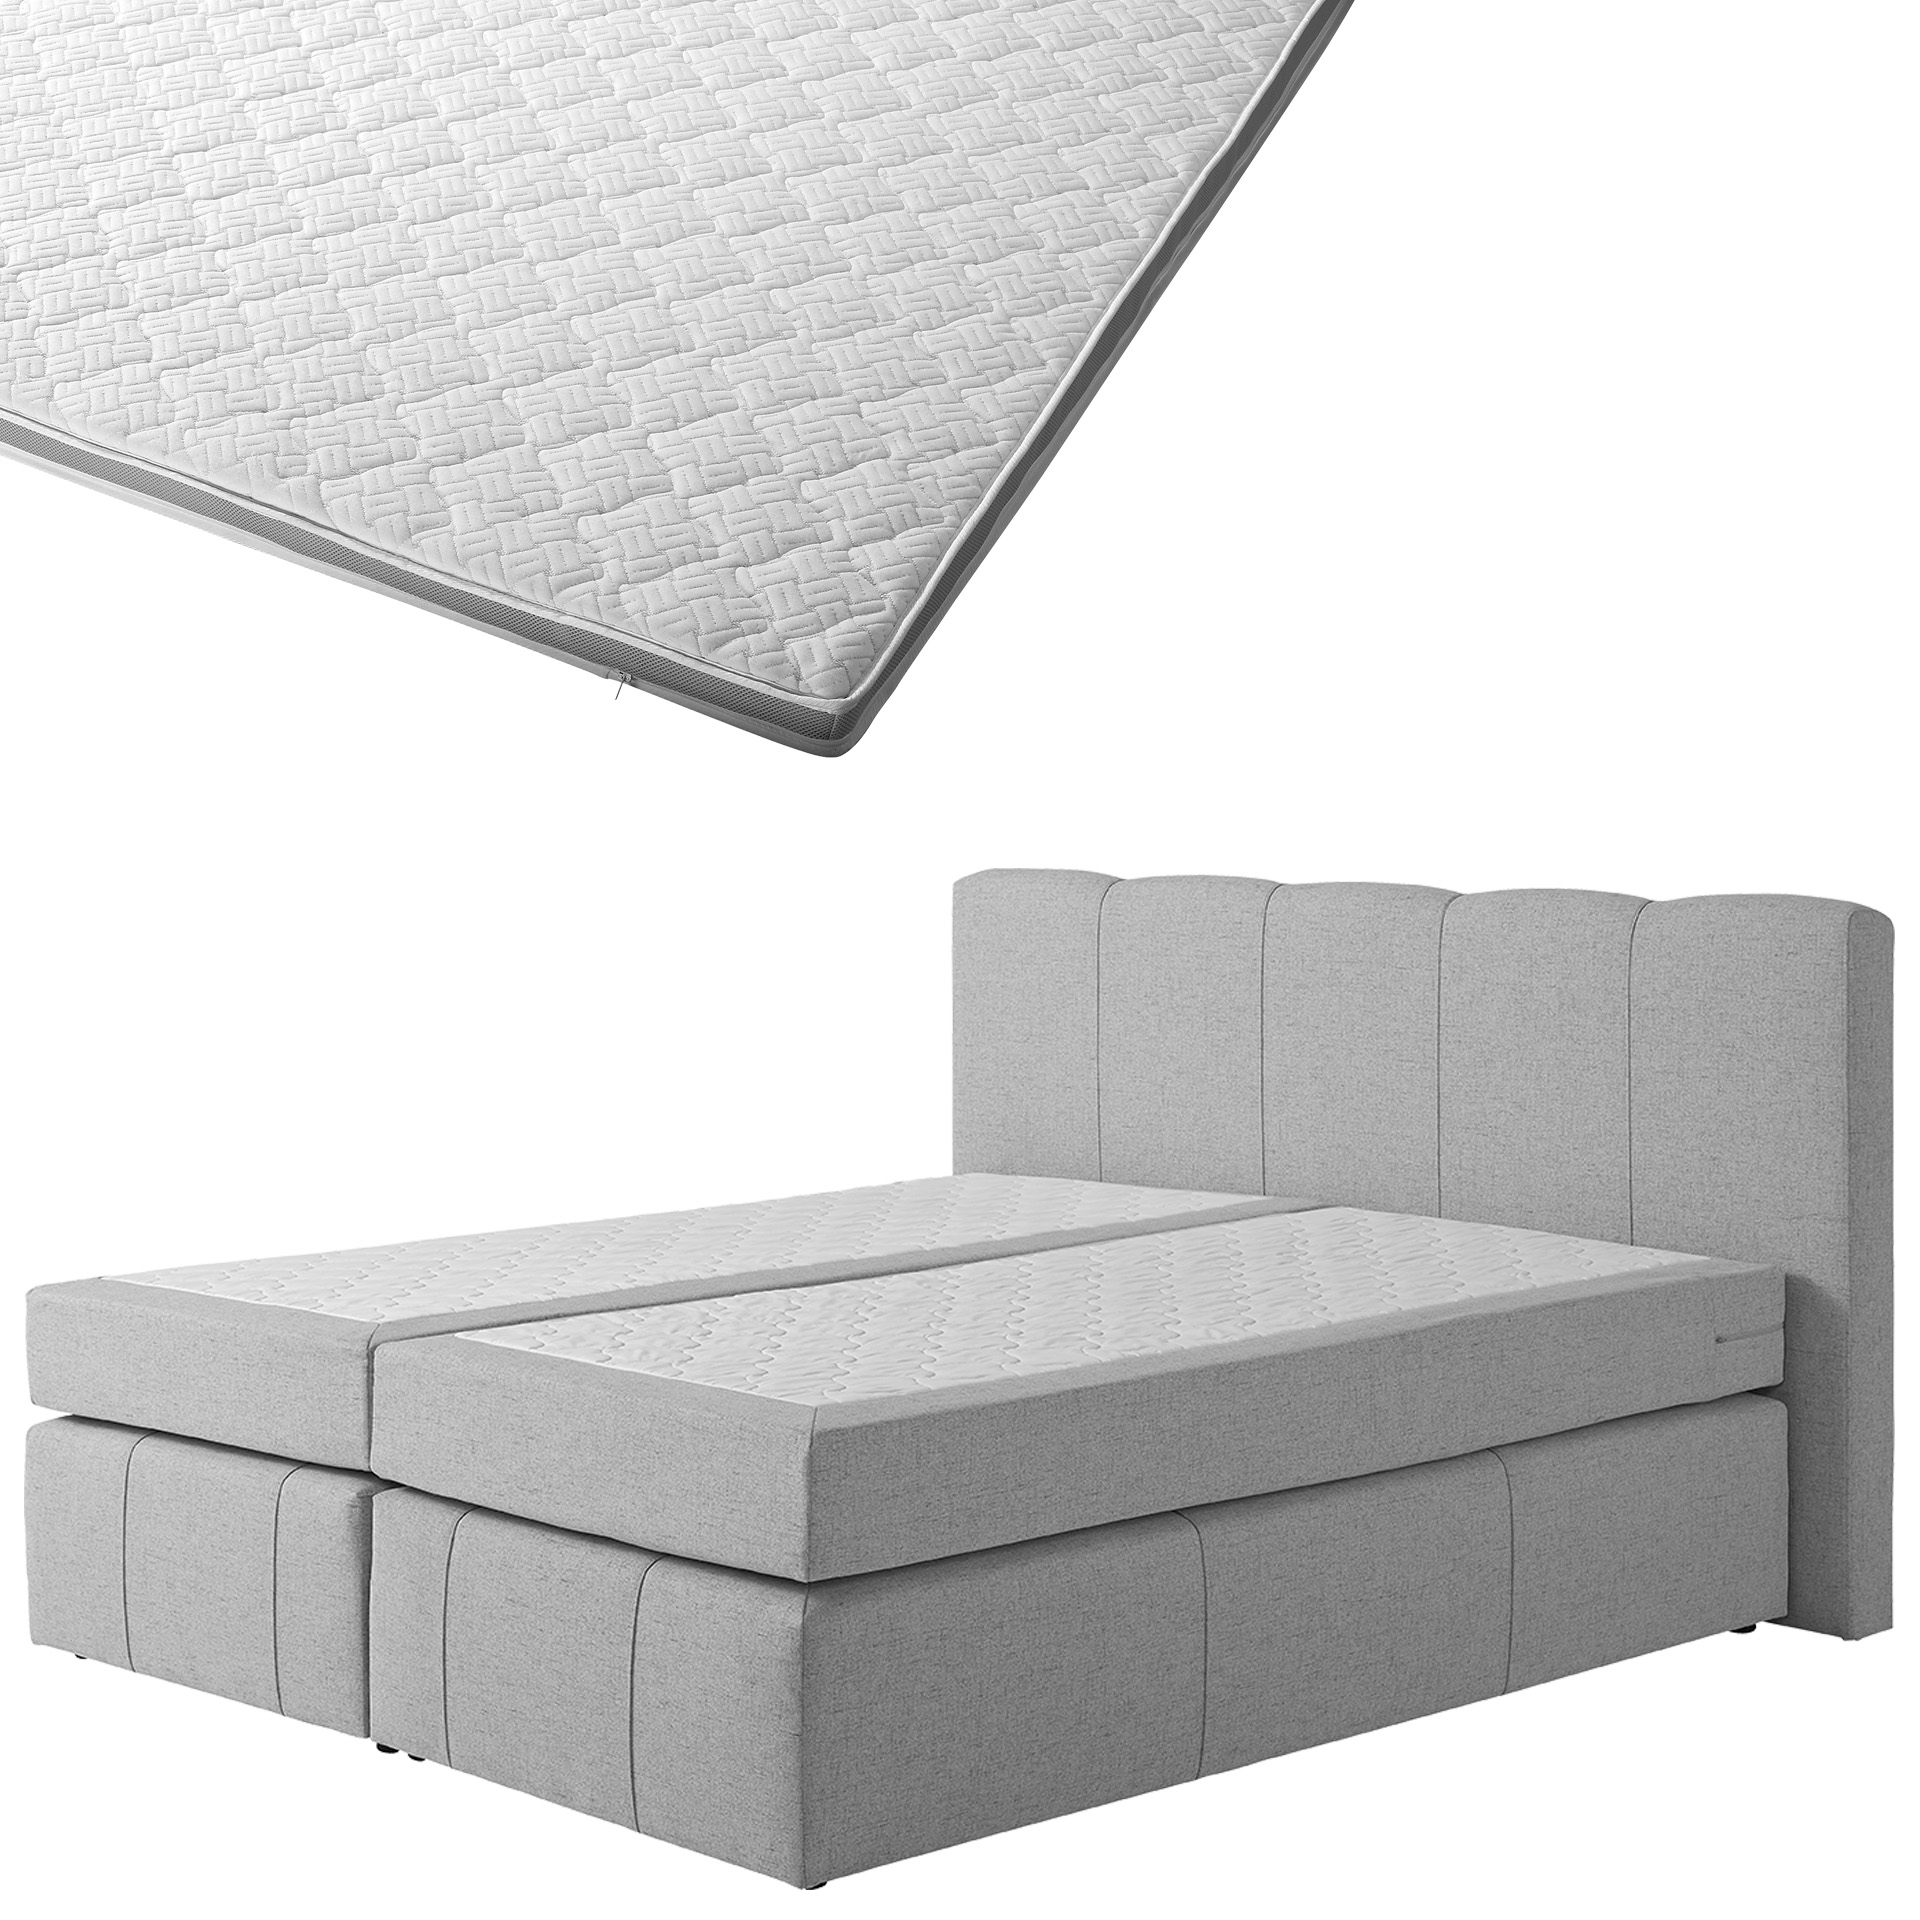 Boxspringbett-Set SUPERDREAM Kolding/ErgoMAXX® Gel Touch® Visko-Gelschaum-Topper (180x200)